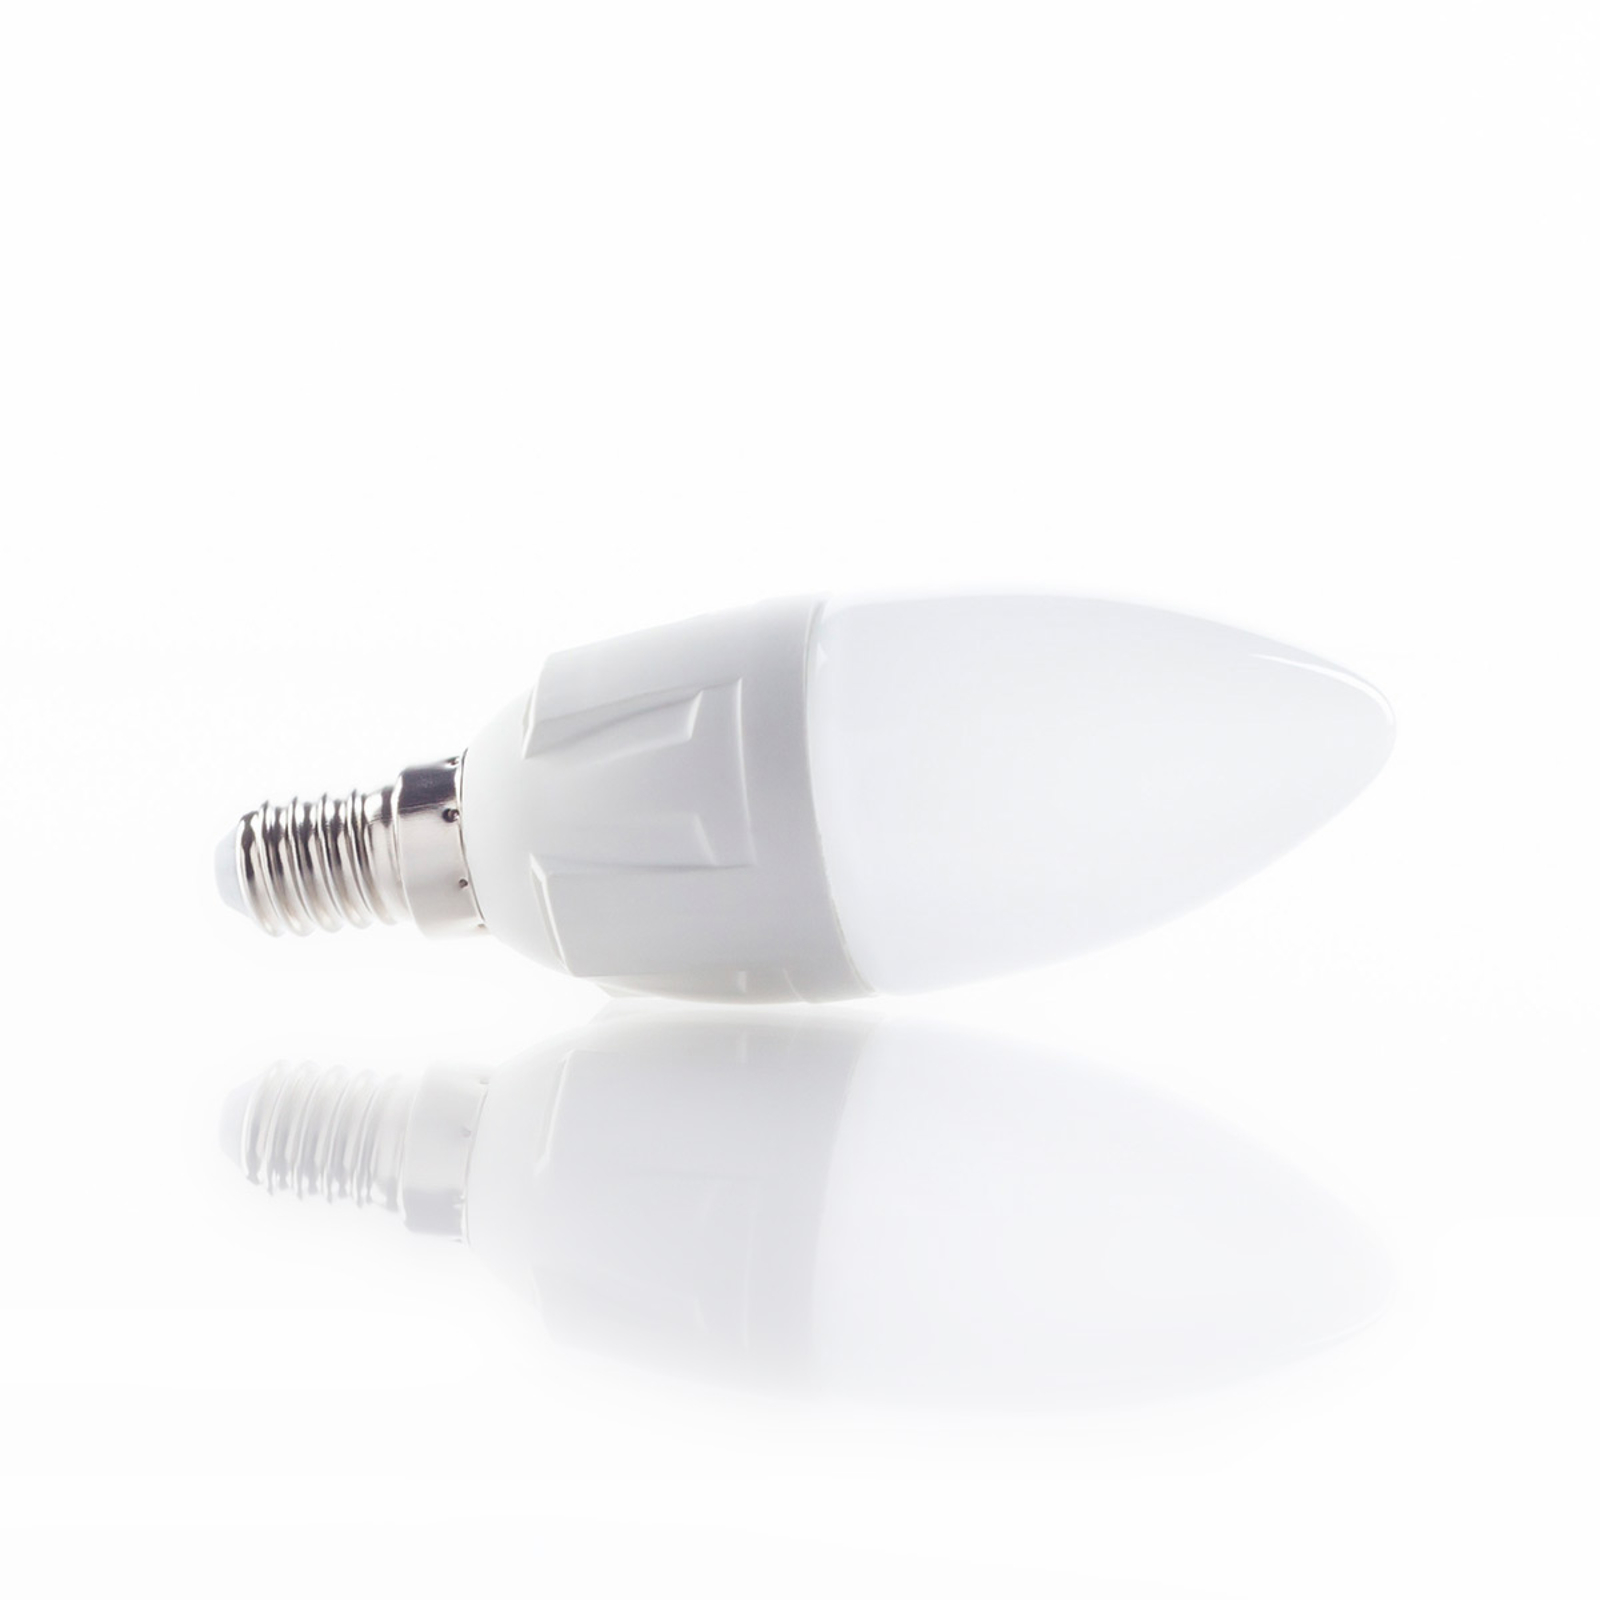 E14 6W 830 LED-Lampe in Kerzenform warmweiß